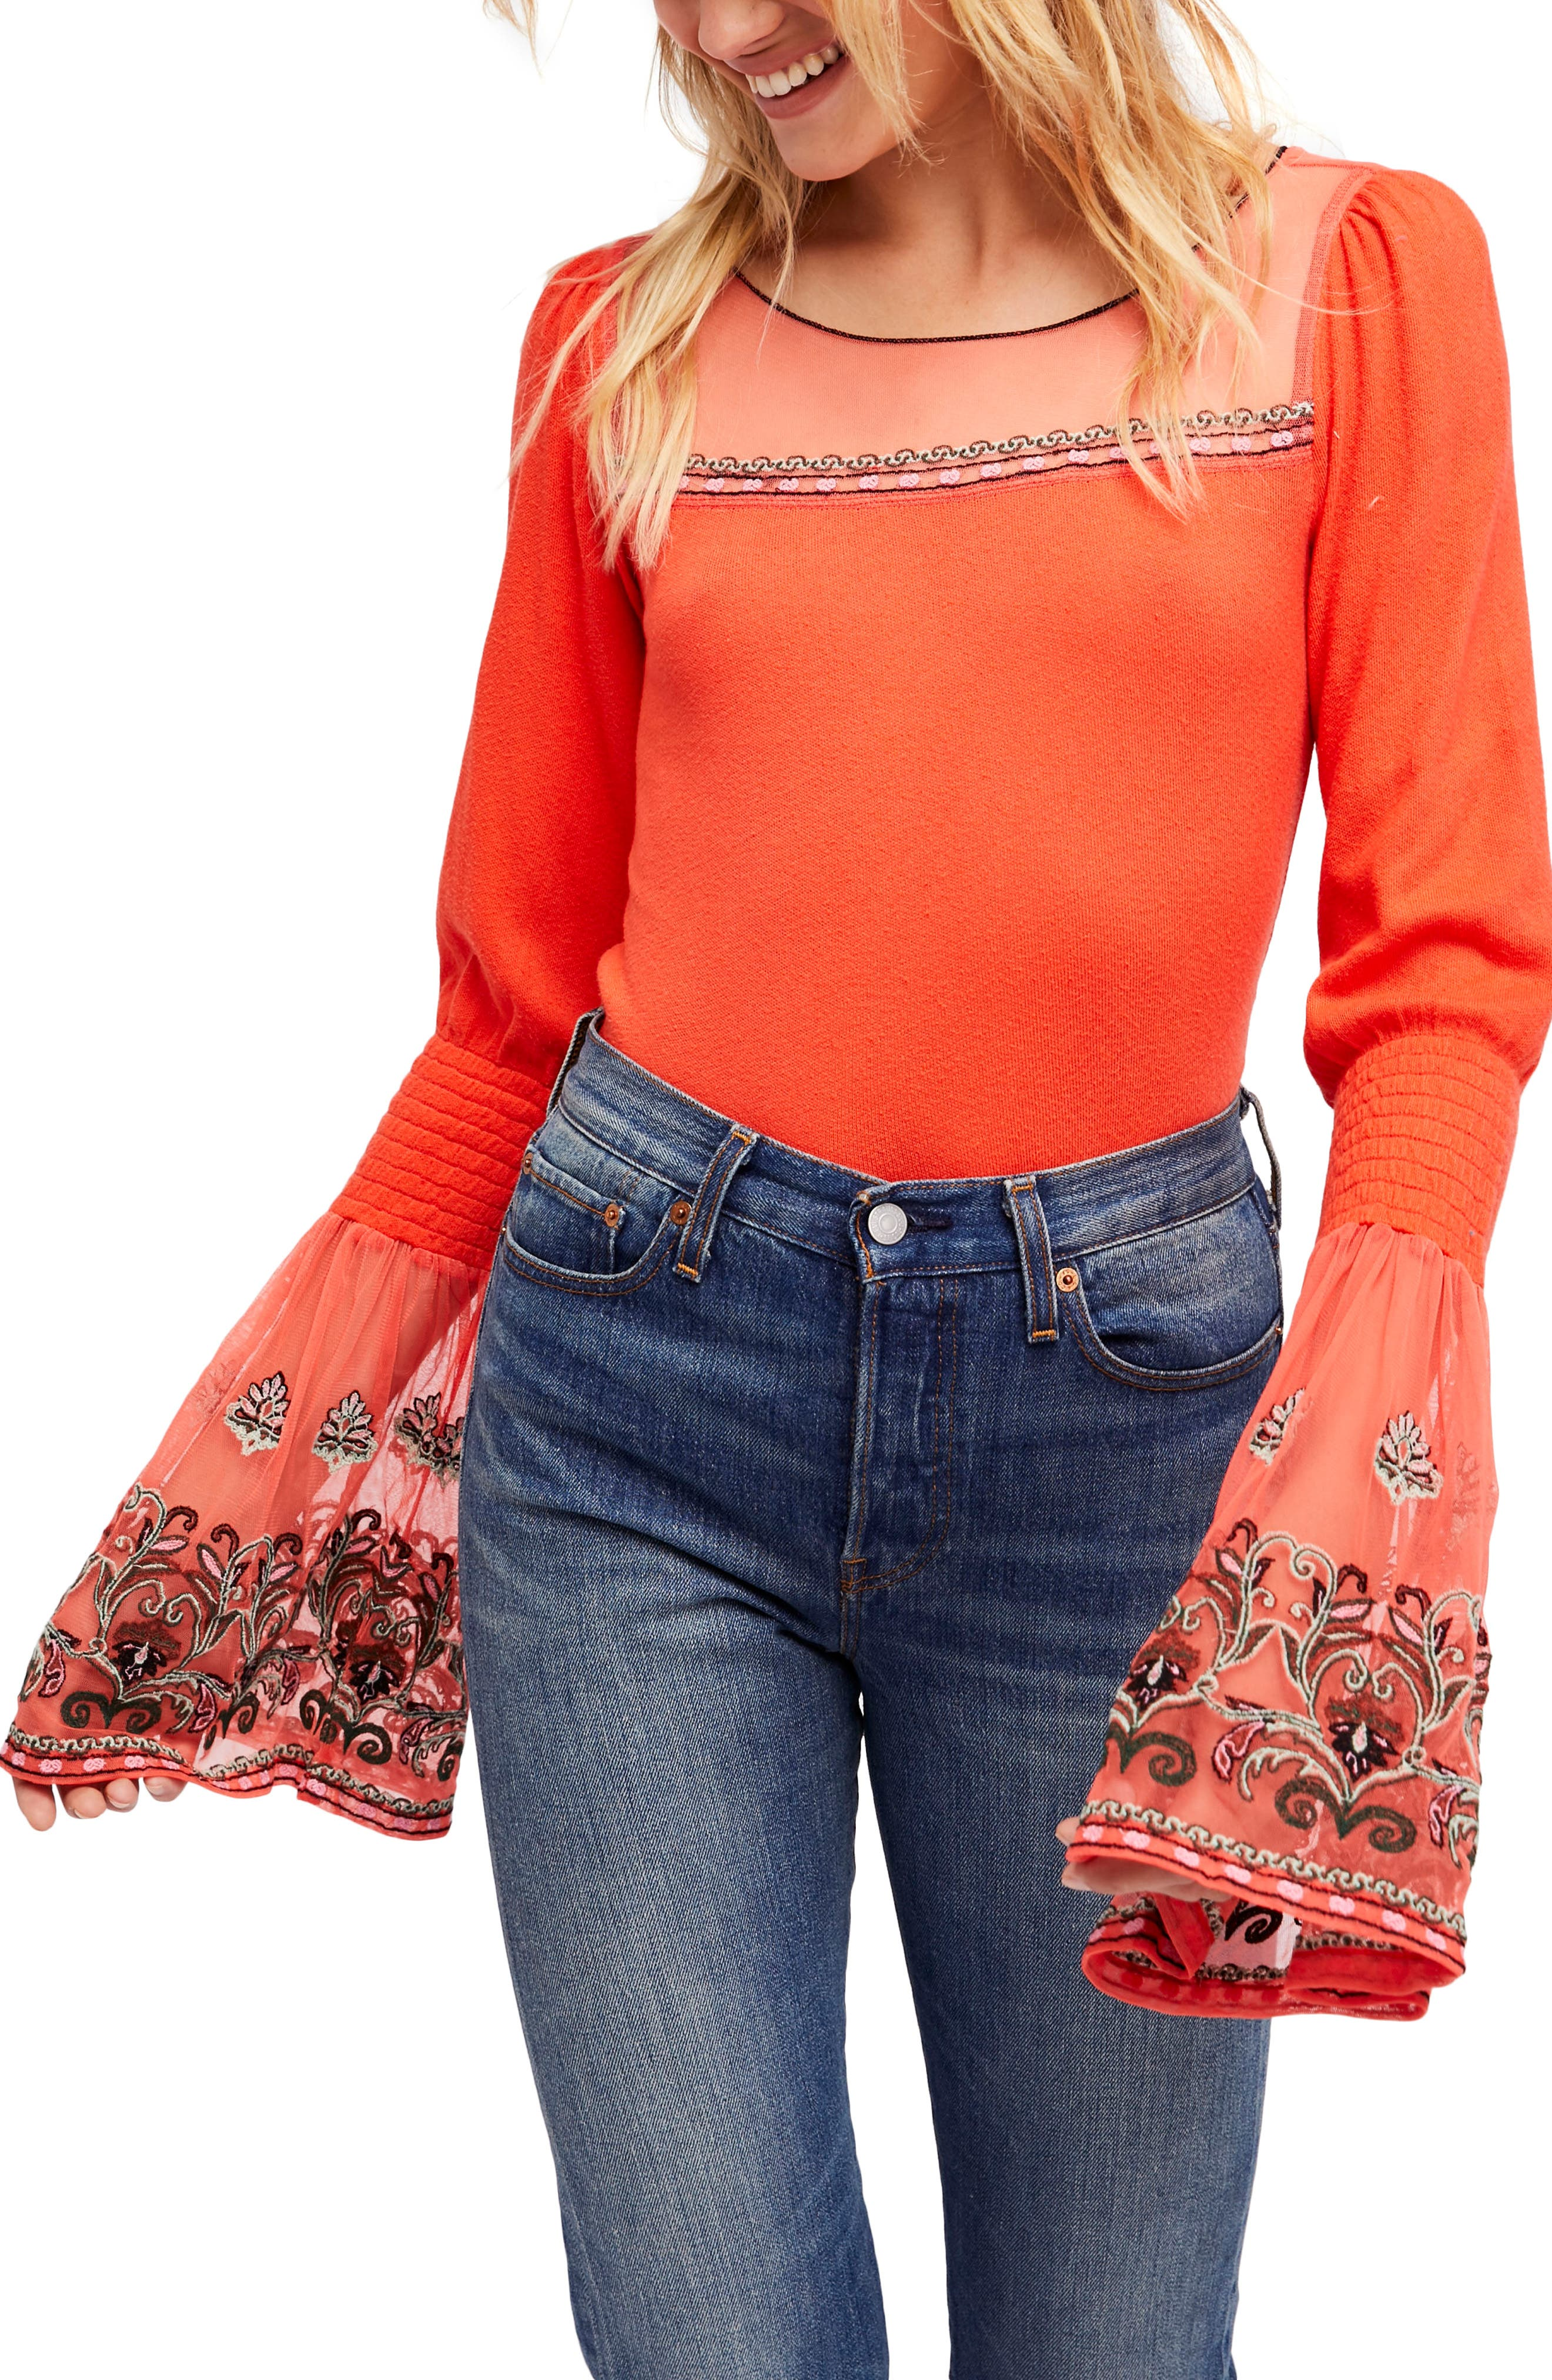 High Tides Top,                             Main thumbnail 1, color,                             Red